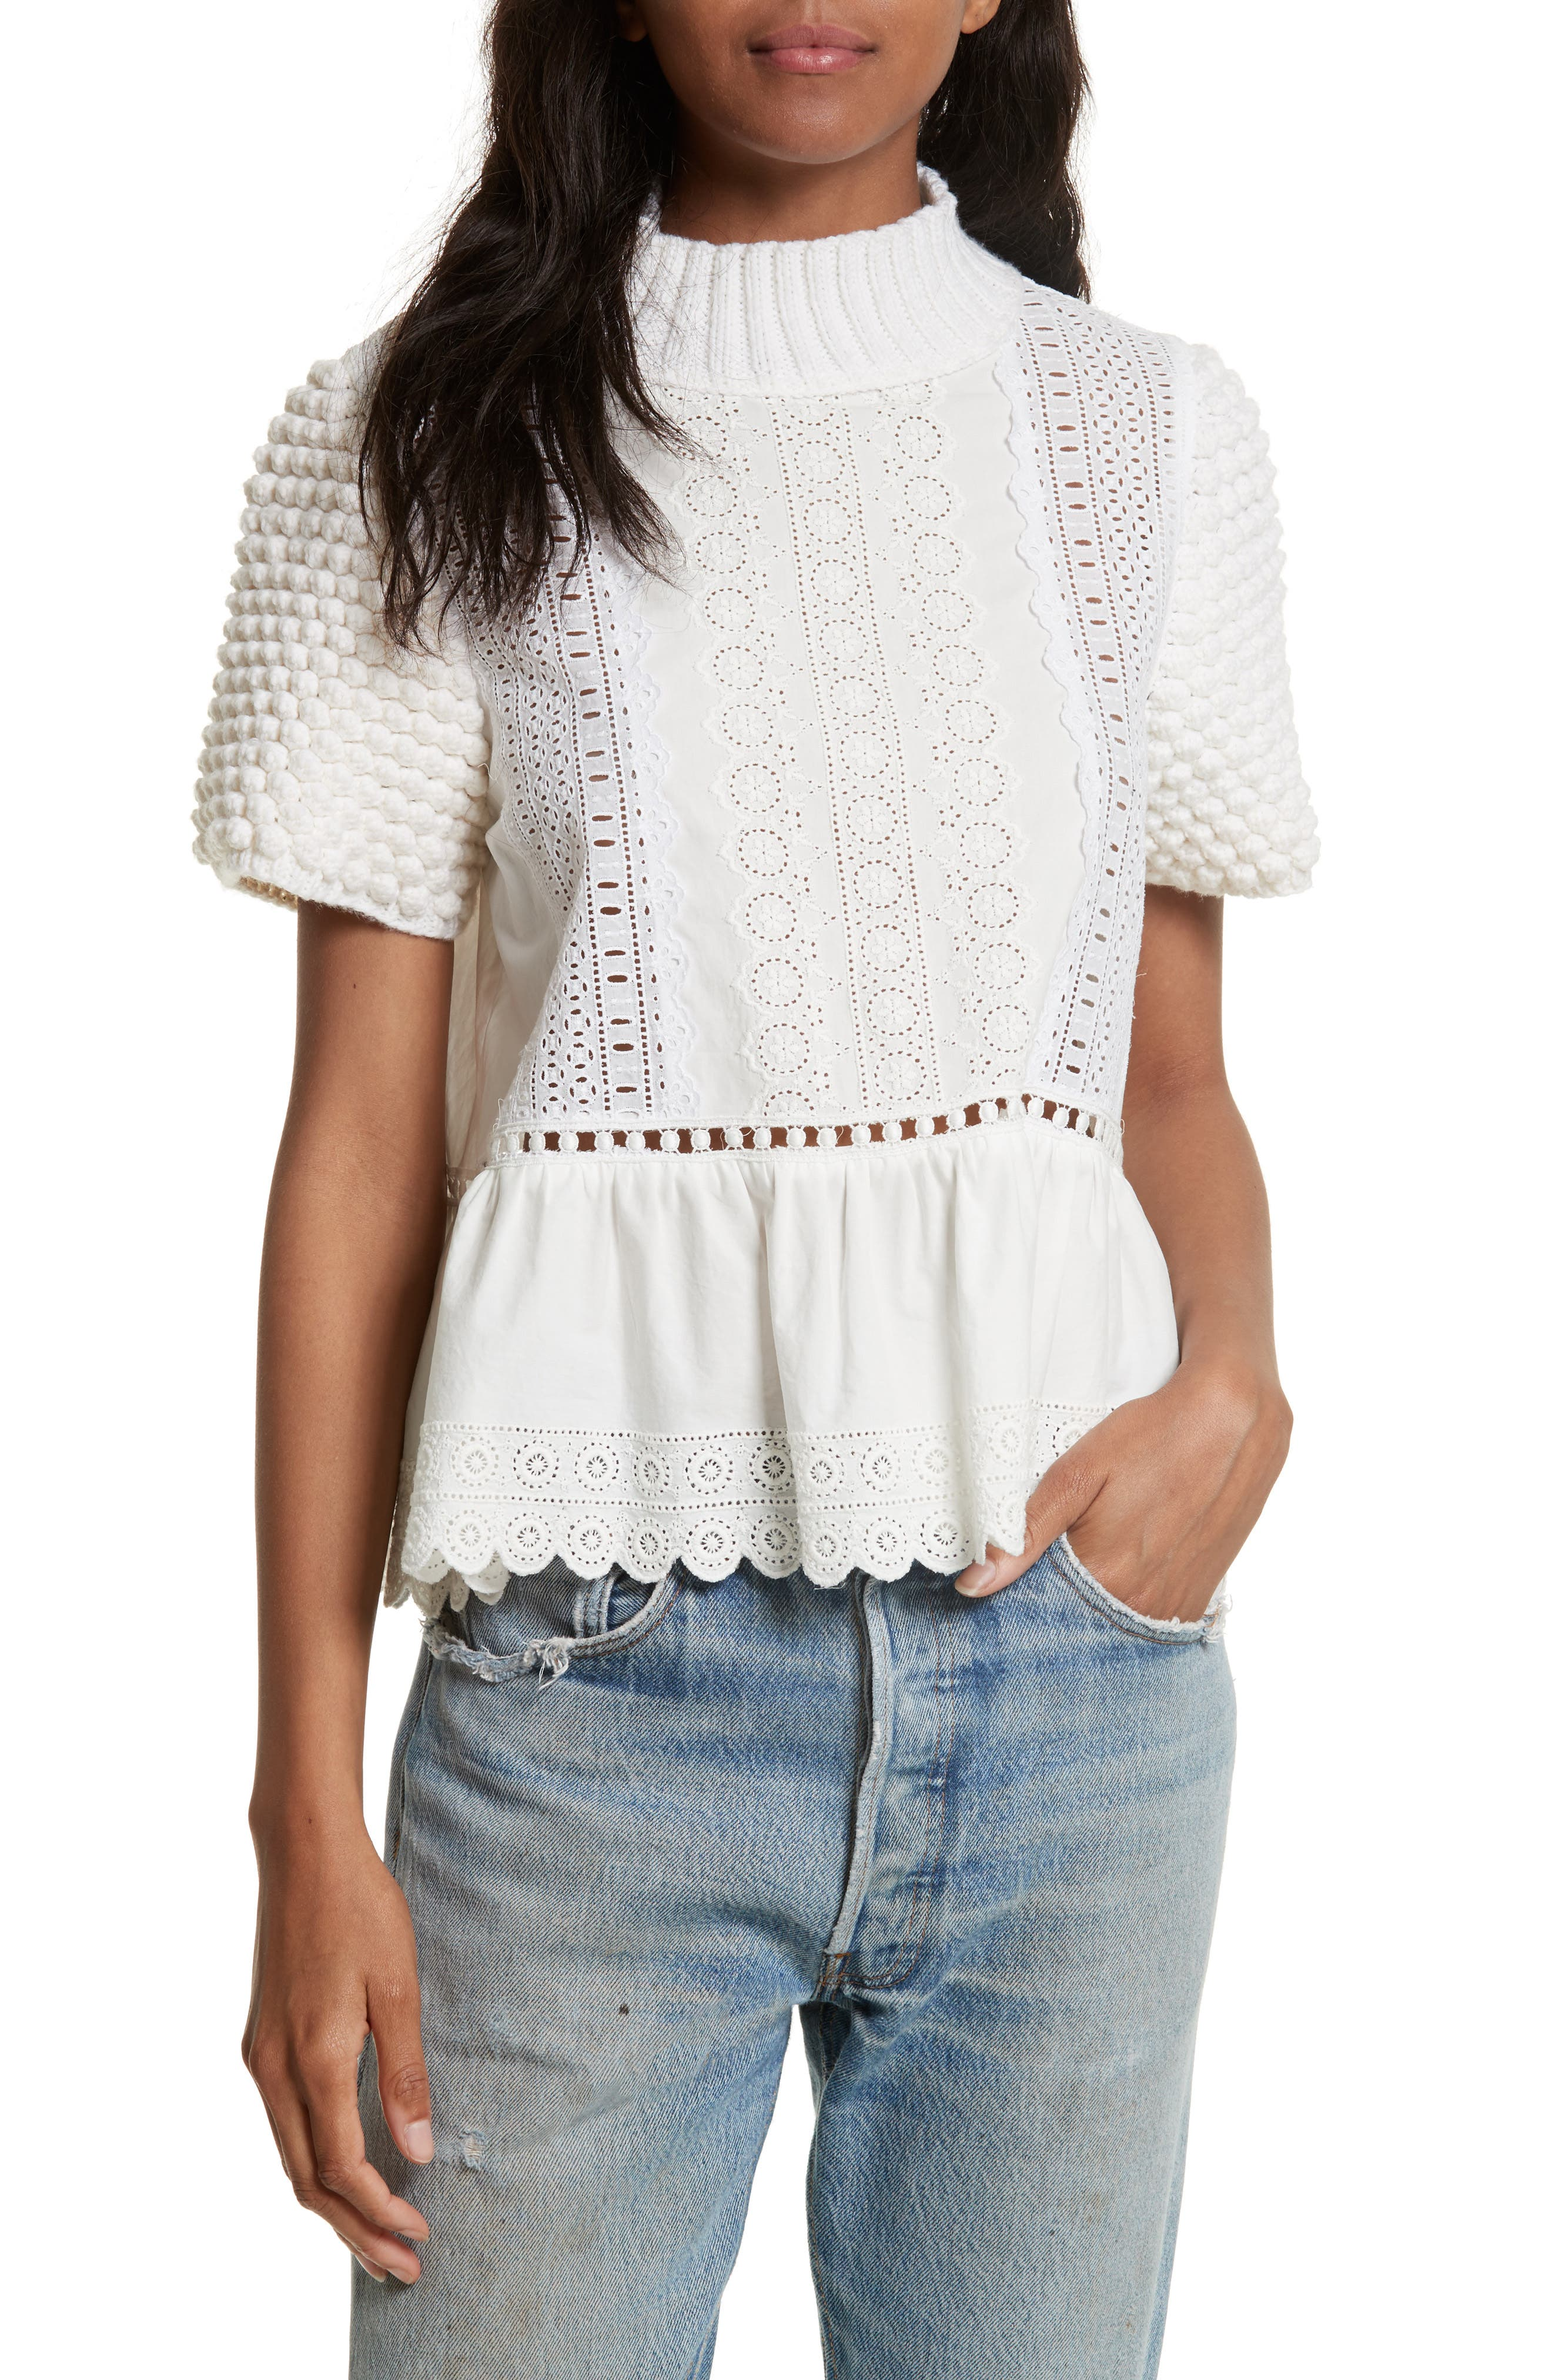 Sea Cotton Eyelet Sweater Top